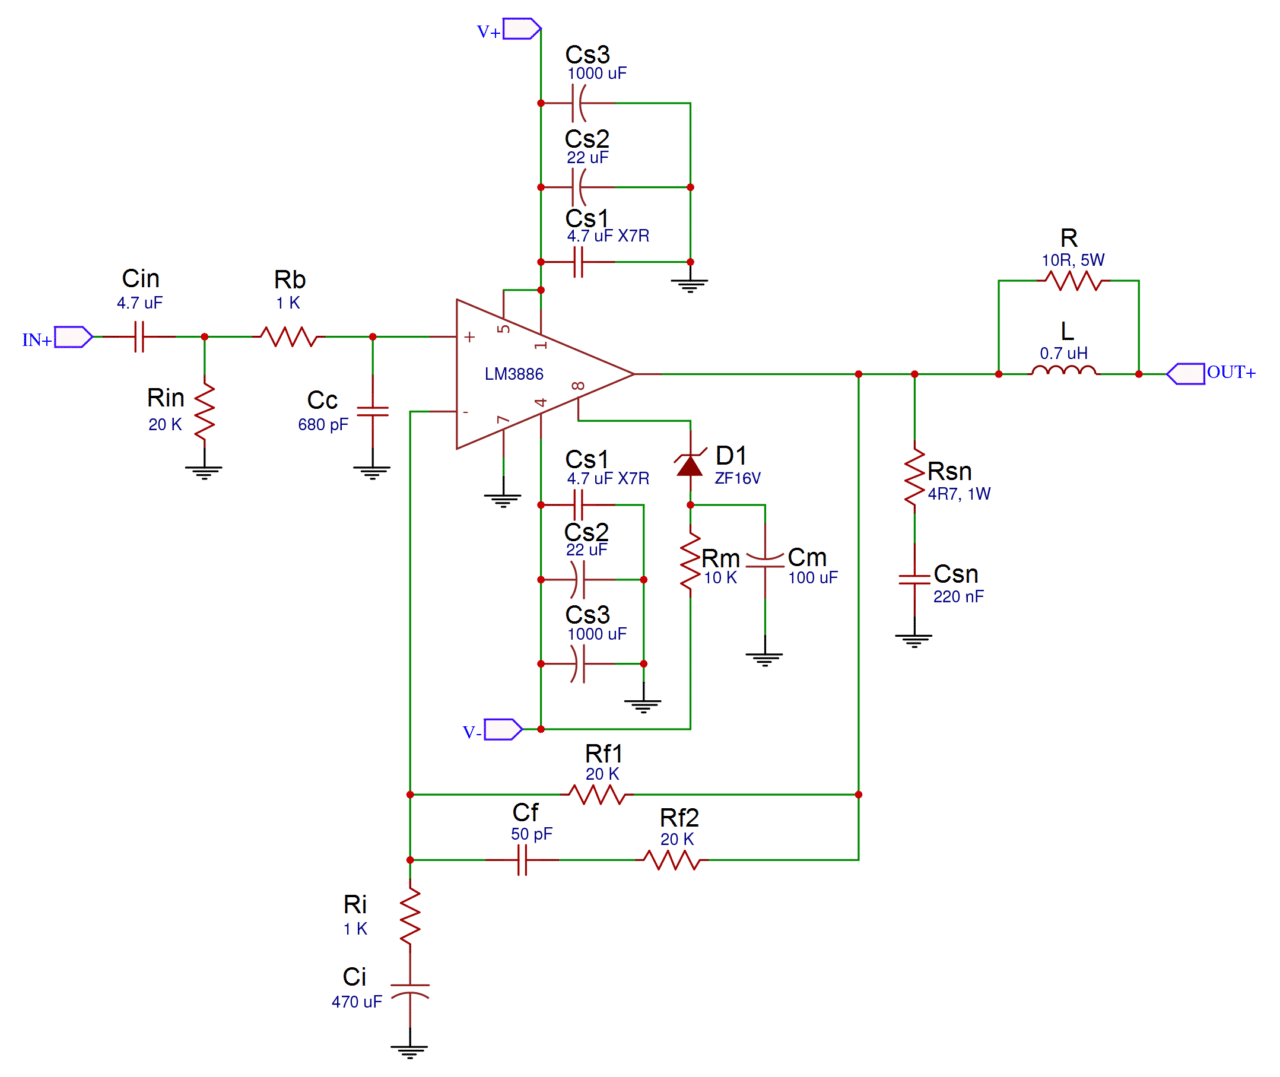 A Complete Guide To Design And Build Hi Fi Lm3886 Amplifier Free Electronic Circuit Simulator Schematic Simple Find Values For The Components In Ill Be Using Below Its Basically Same As One Datasheet